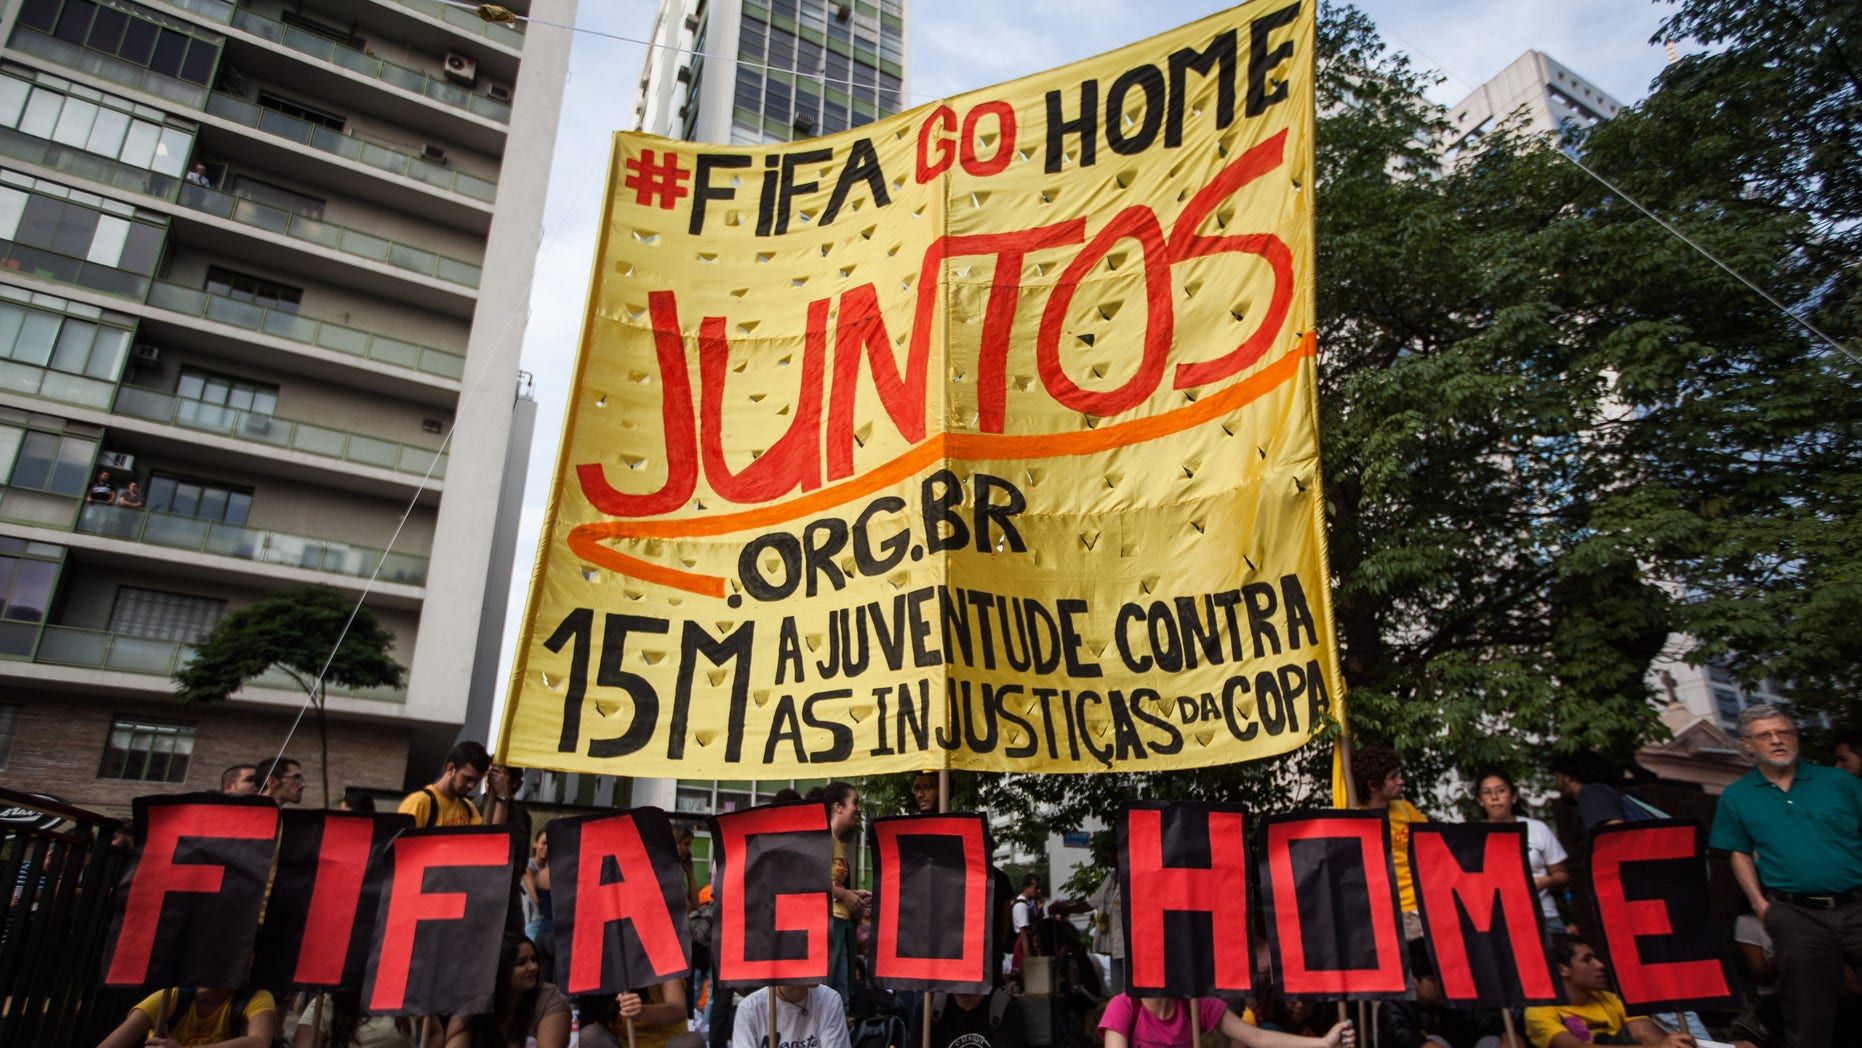 Demonstrators held a protest against the World Cup FIFA soccer on Thursday, May 15, 2014 in Sao Paulo, Brazil.